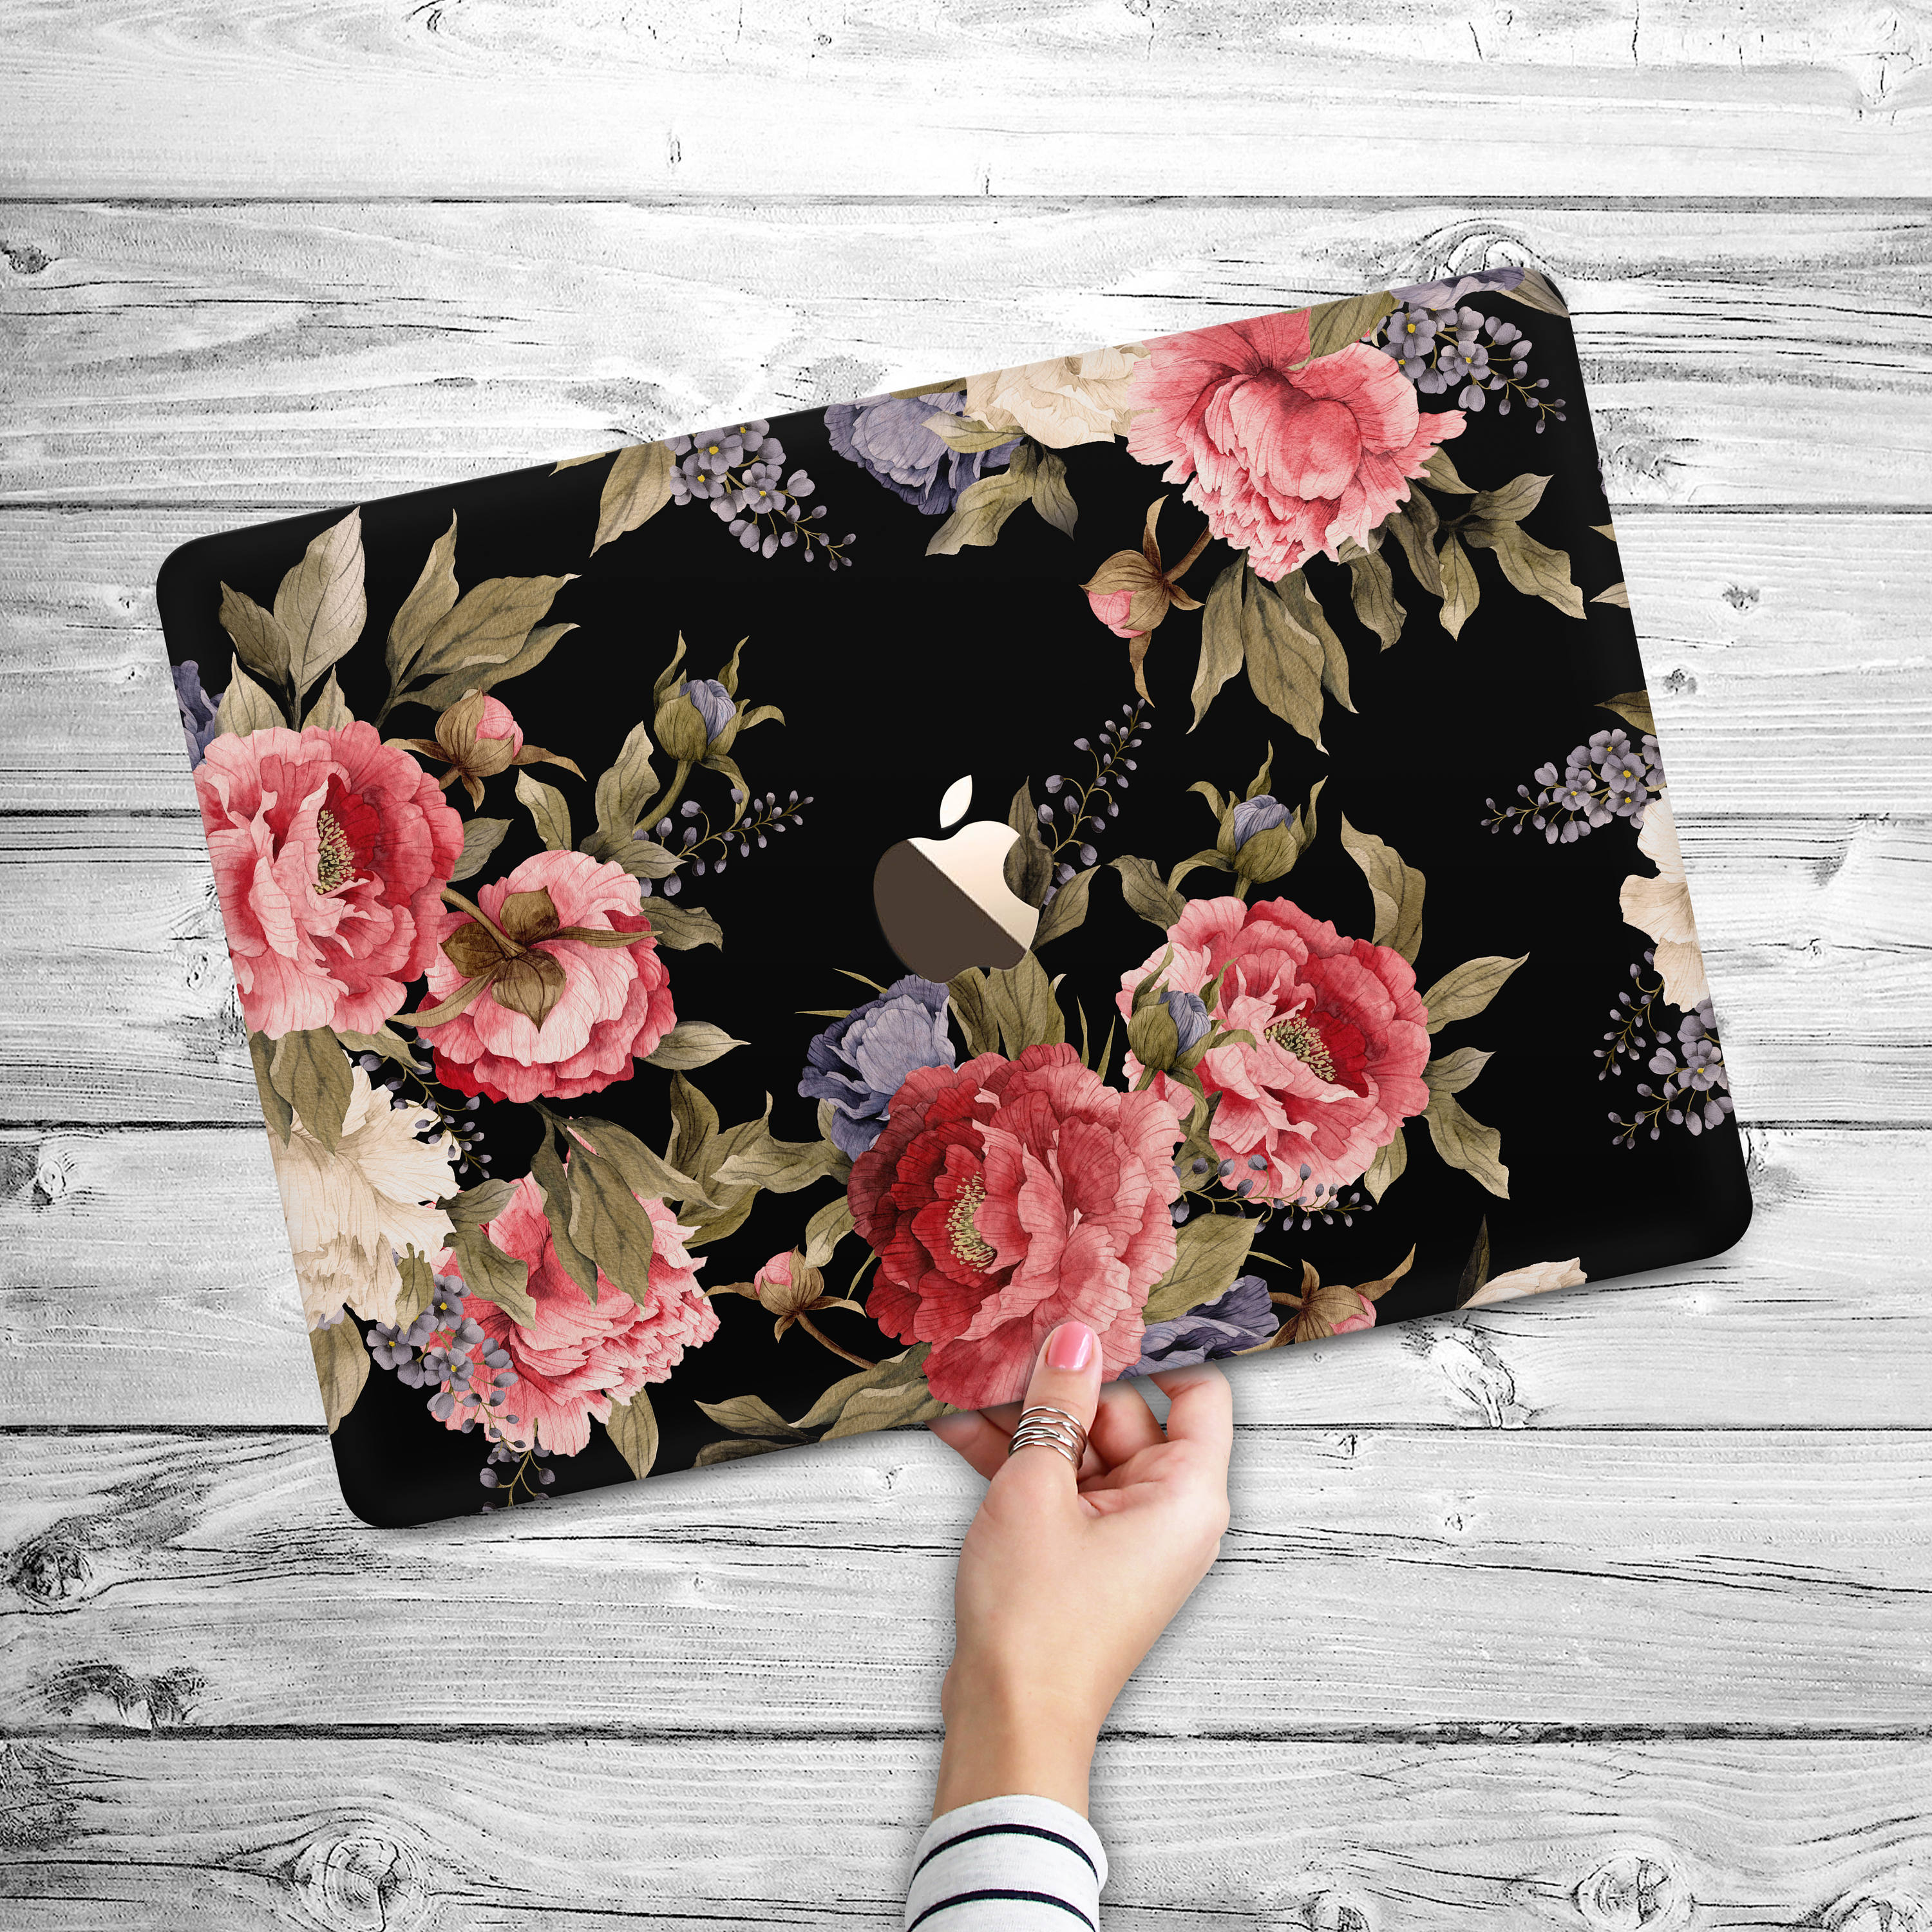 half off 3a7df d684b Floral MacBook Air 11 Air 13 Case / Pink Flowers Macbook 13 Pro Retina  Black Hard Cover / Macbook 12 15 Pro Touch Bar 2018 Pink Peonies Case